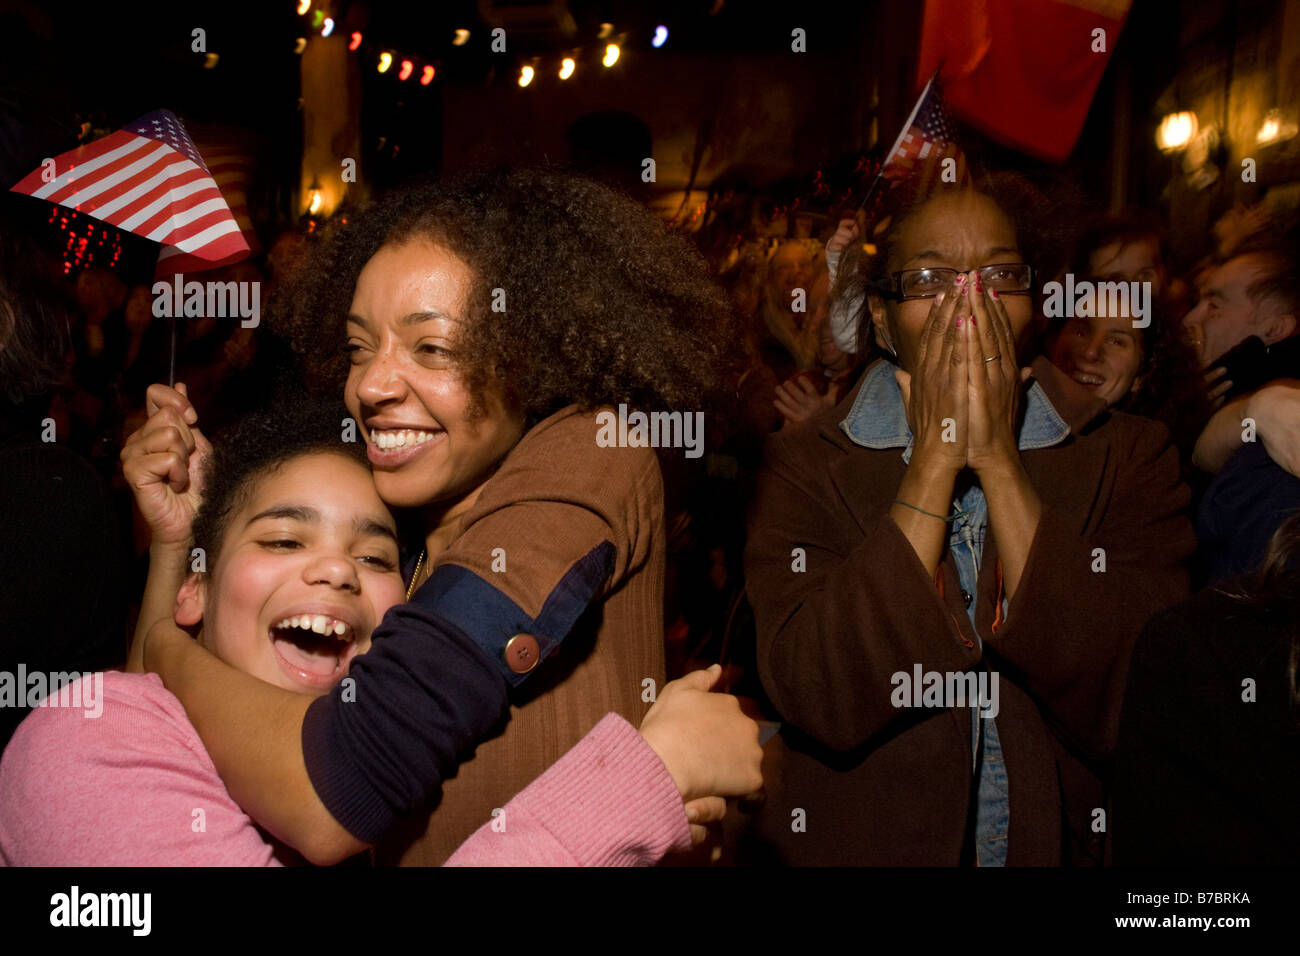 Elated US expatriate citizens celebrate Barack Obama's inauguration as the 44th US President in London. - Stock Image